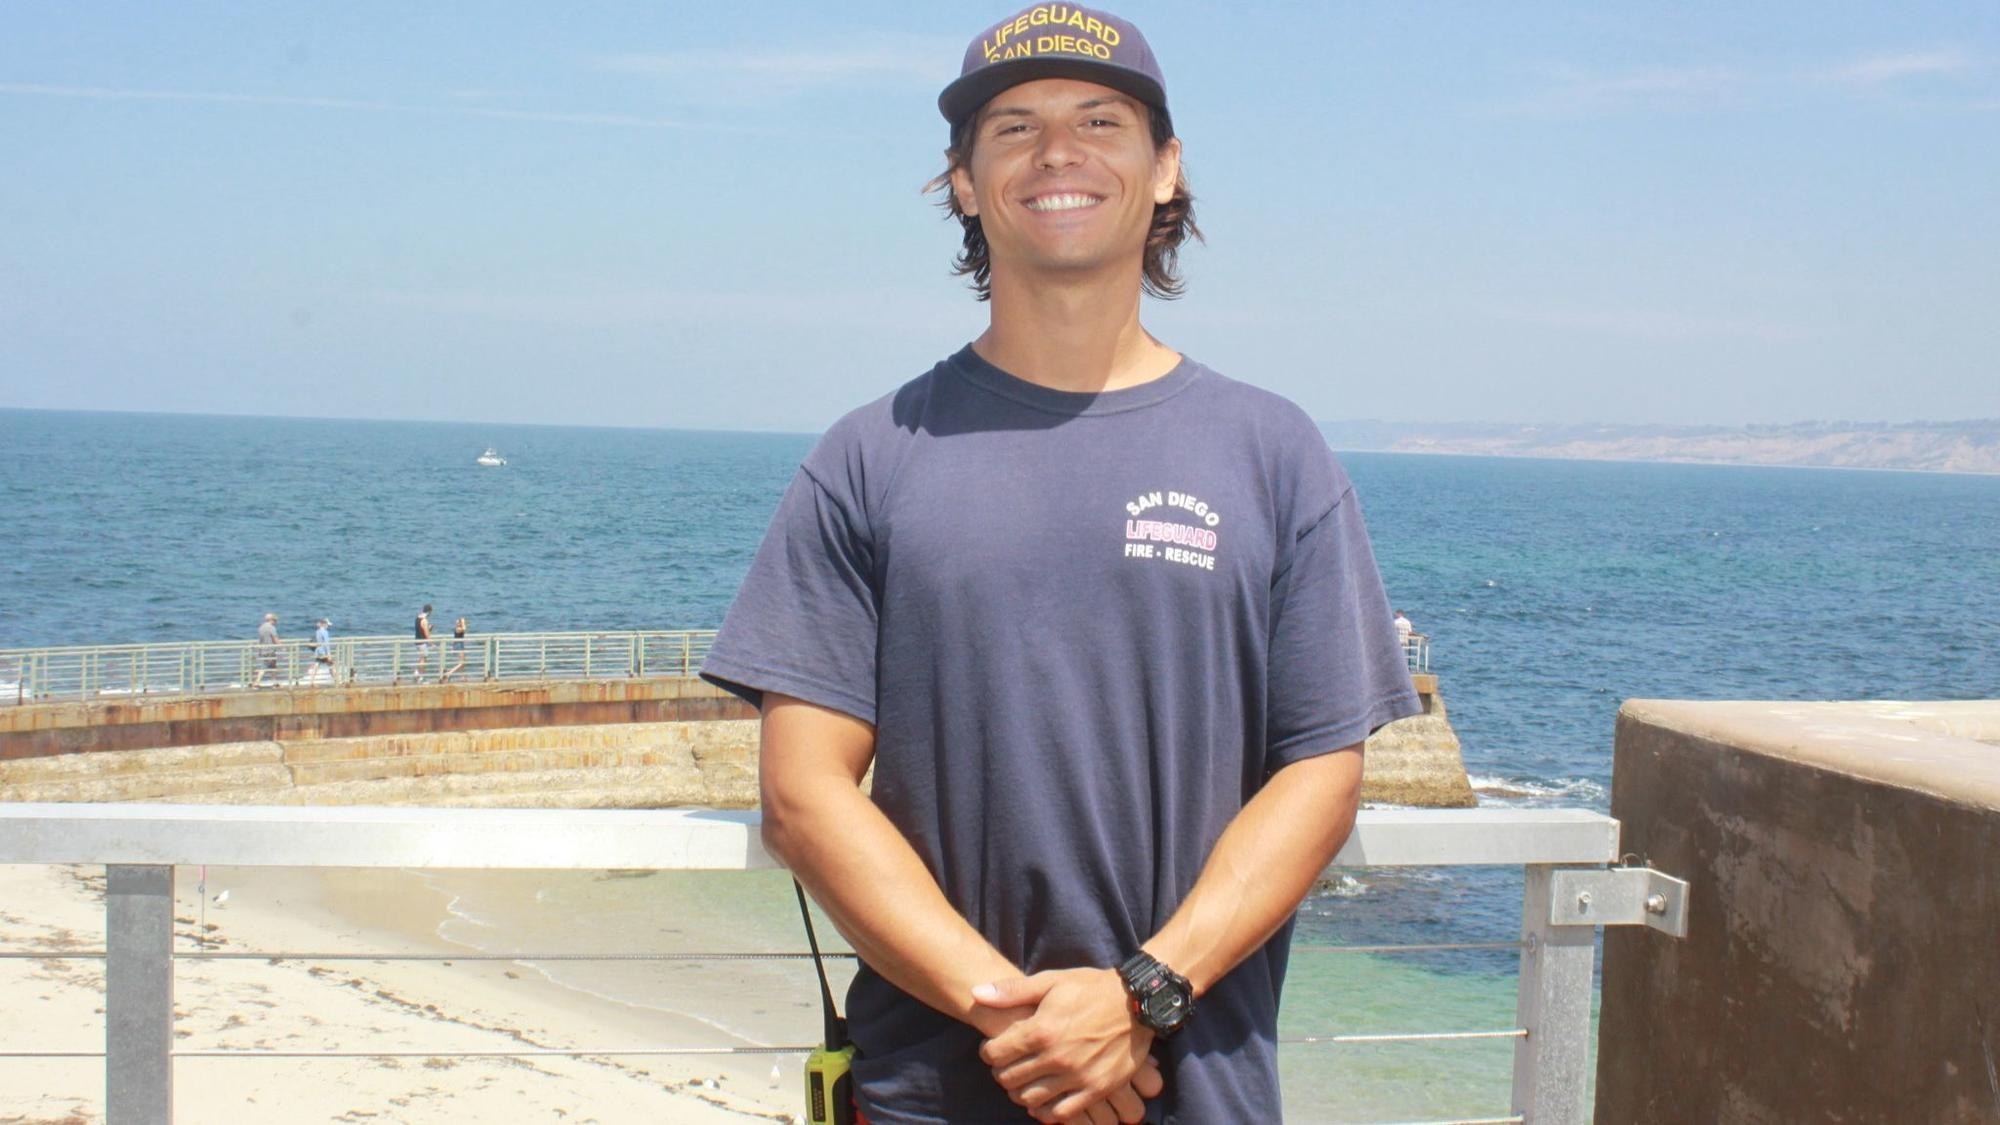 Rescue Of The Year Award Lifeguard James Earnest Saves